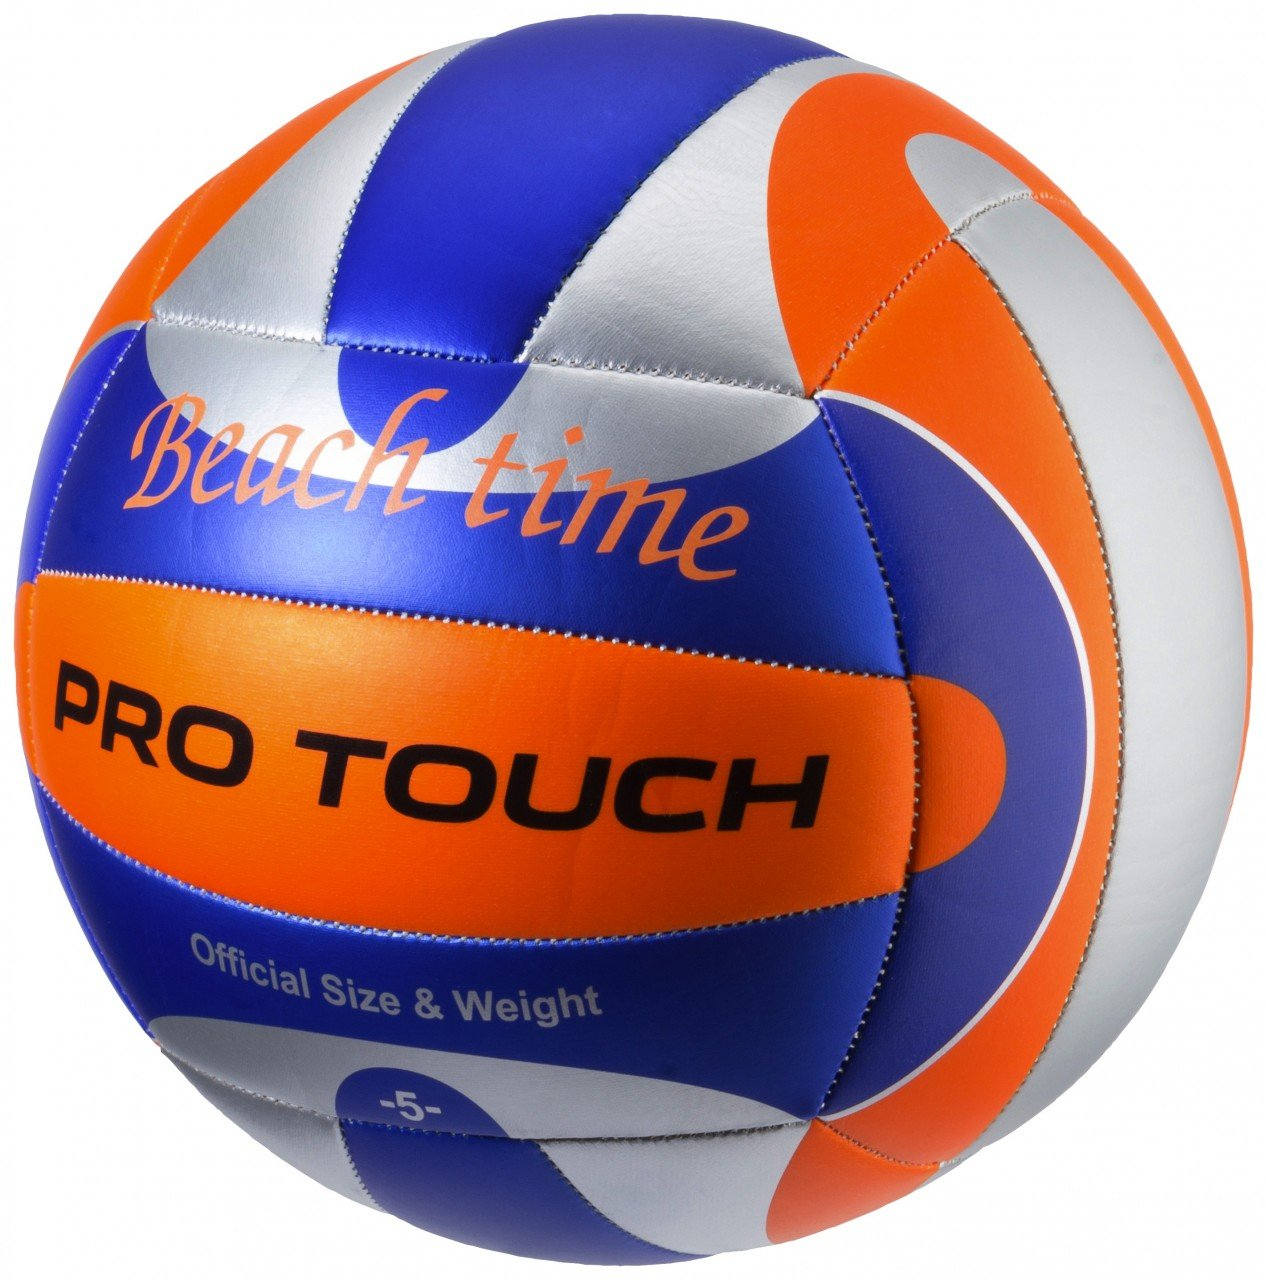 PRO TOUCH Beach-Volleyball Beach Time BLAU/SCHWARZ 5 PRR8A|#Pro Touch 214678